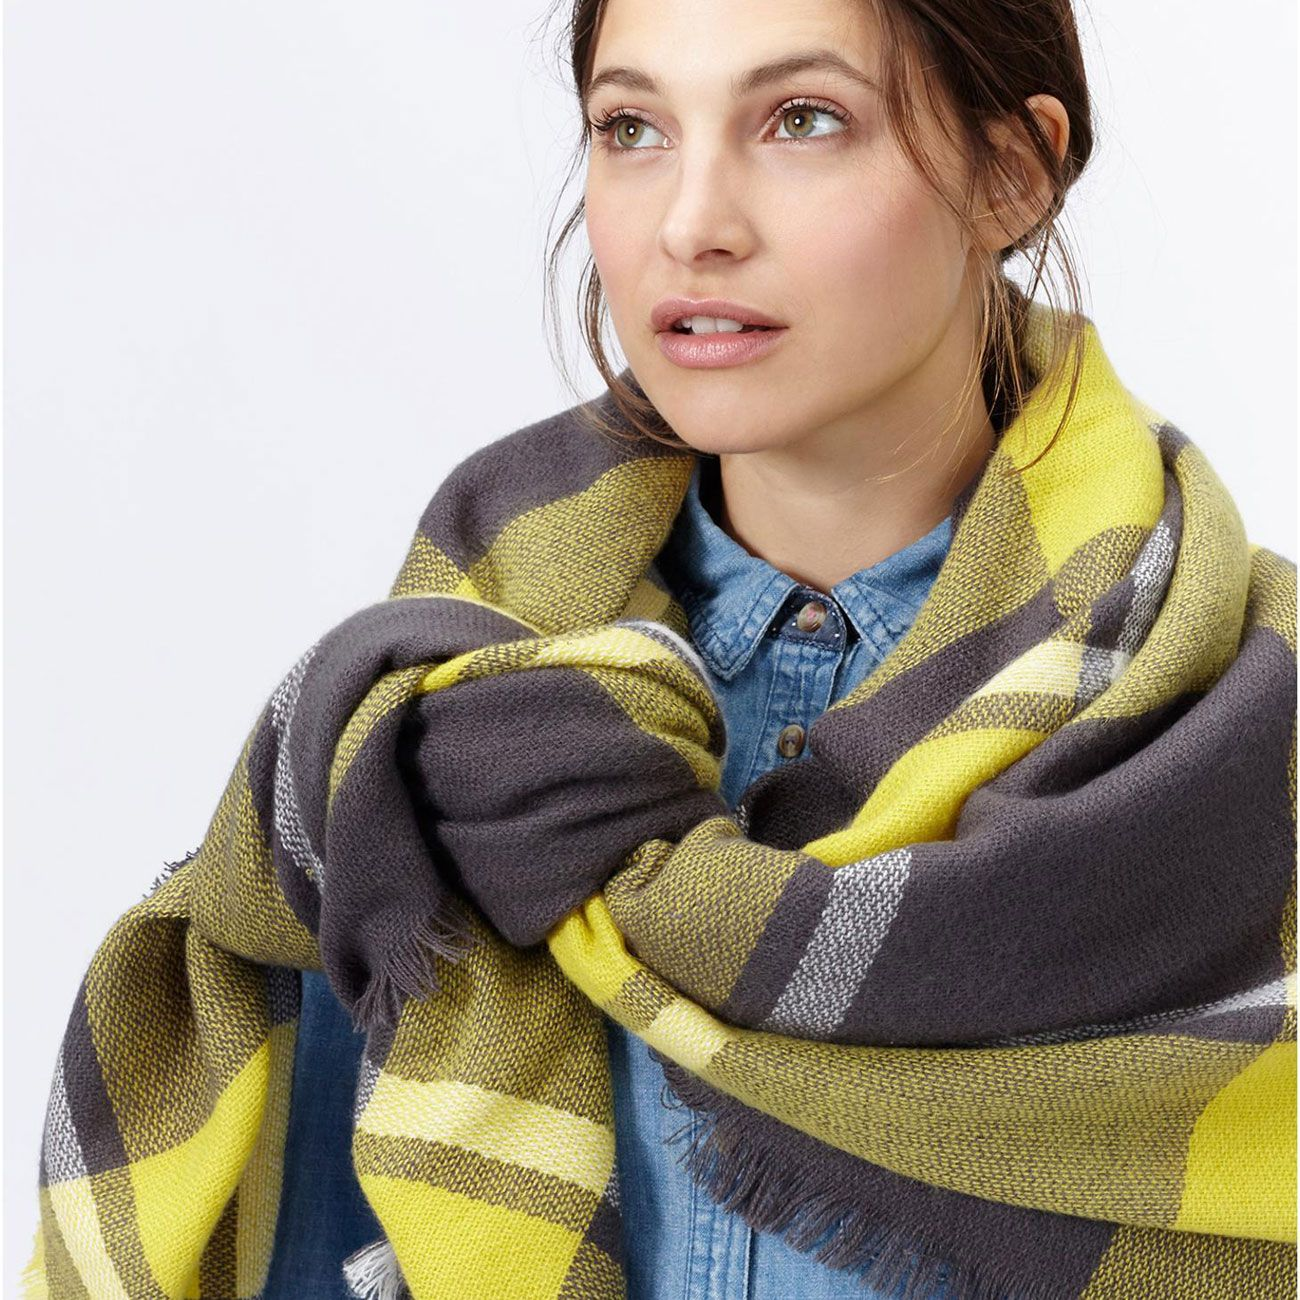 How to large a wear knit scarf advise to wear in summer in 2019